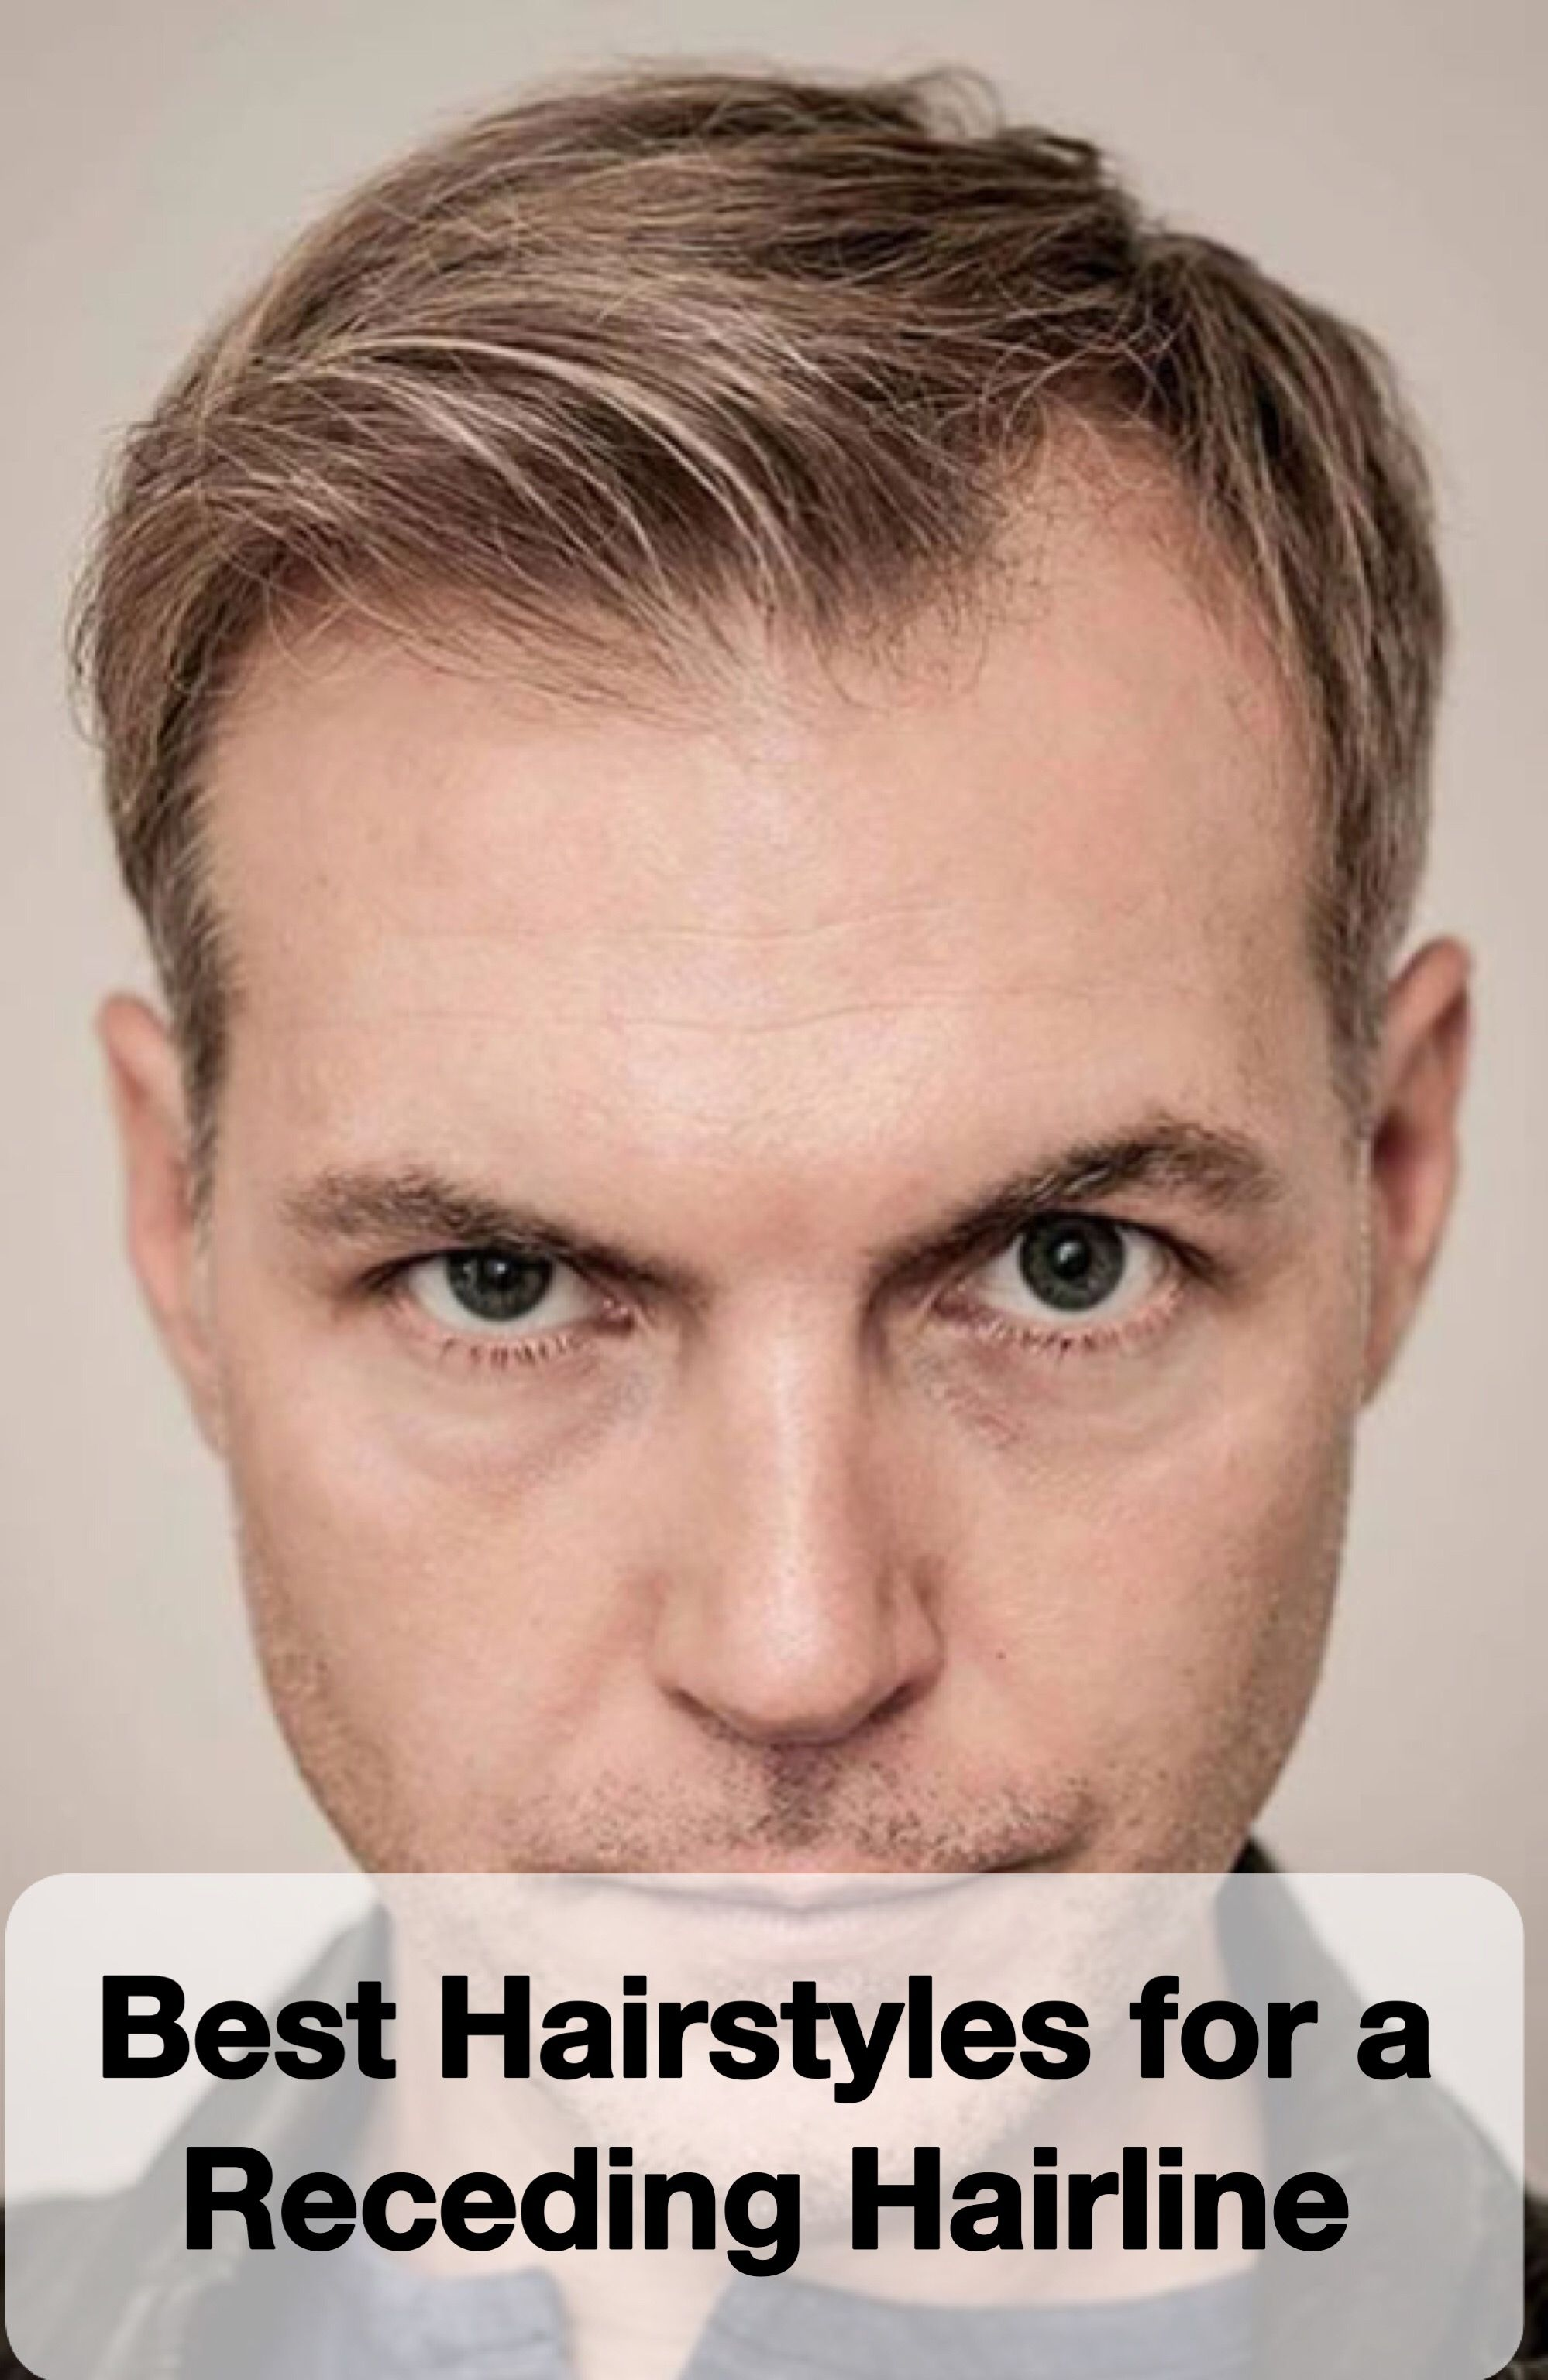 25 Best Hairstyles For A Receding Hairline Haircuts Pinterest